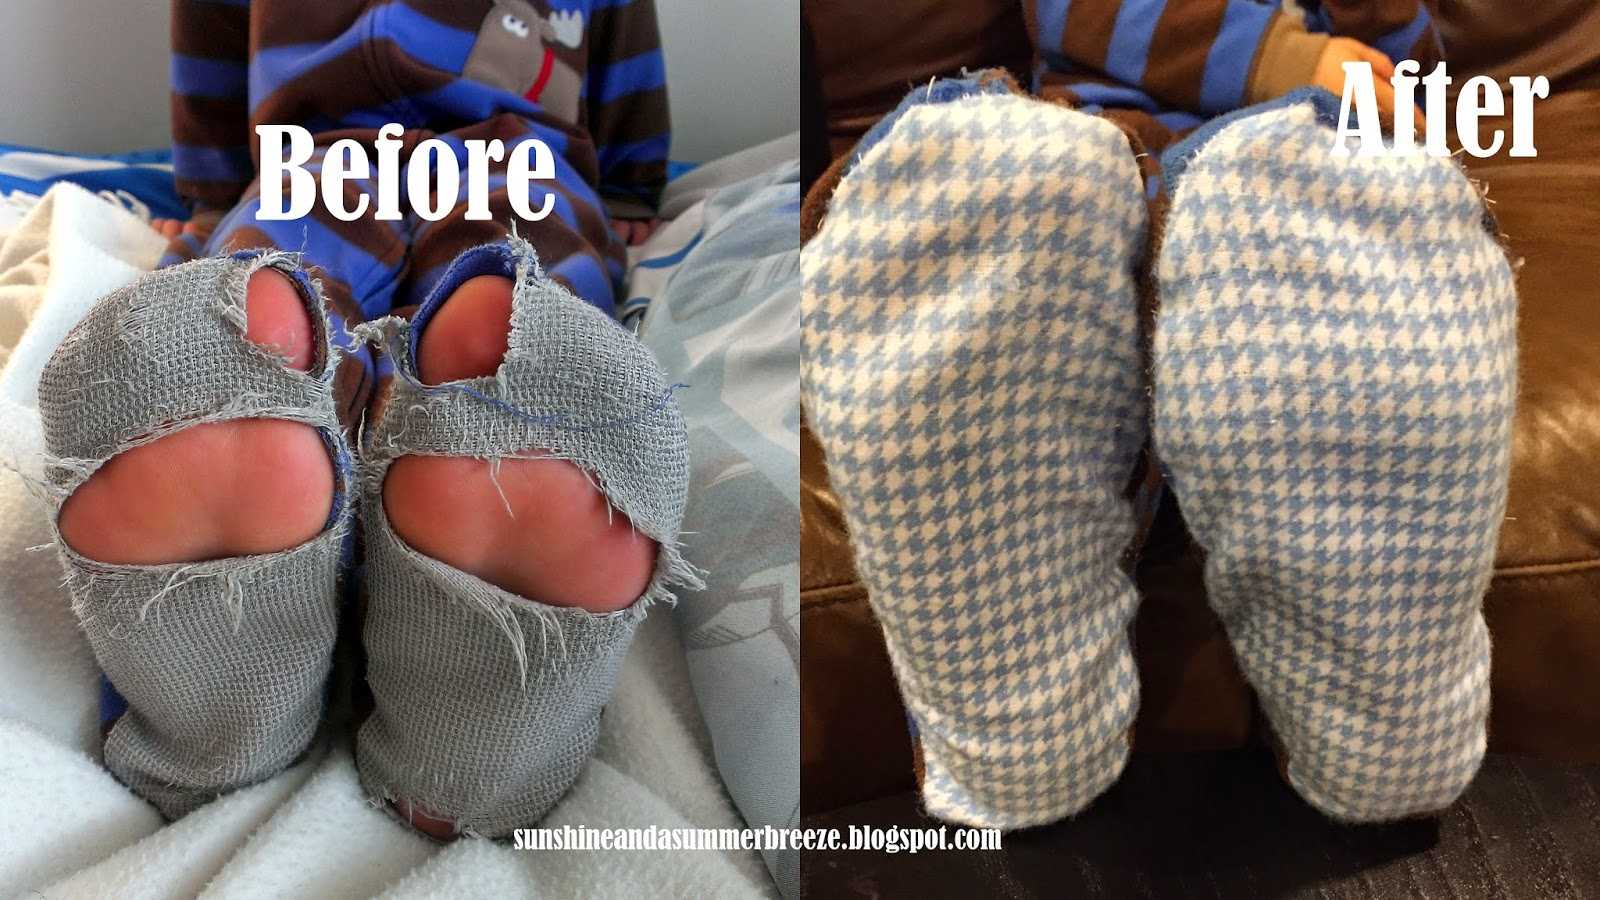 How to Fix Footed Pajamas - HMLP Feature